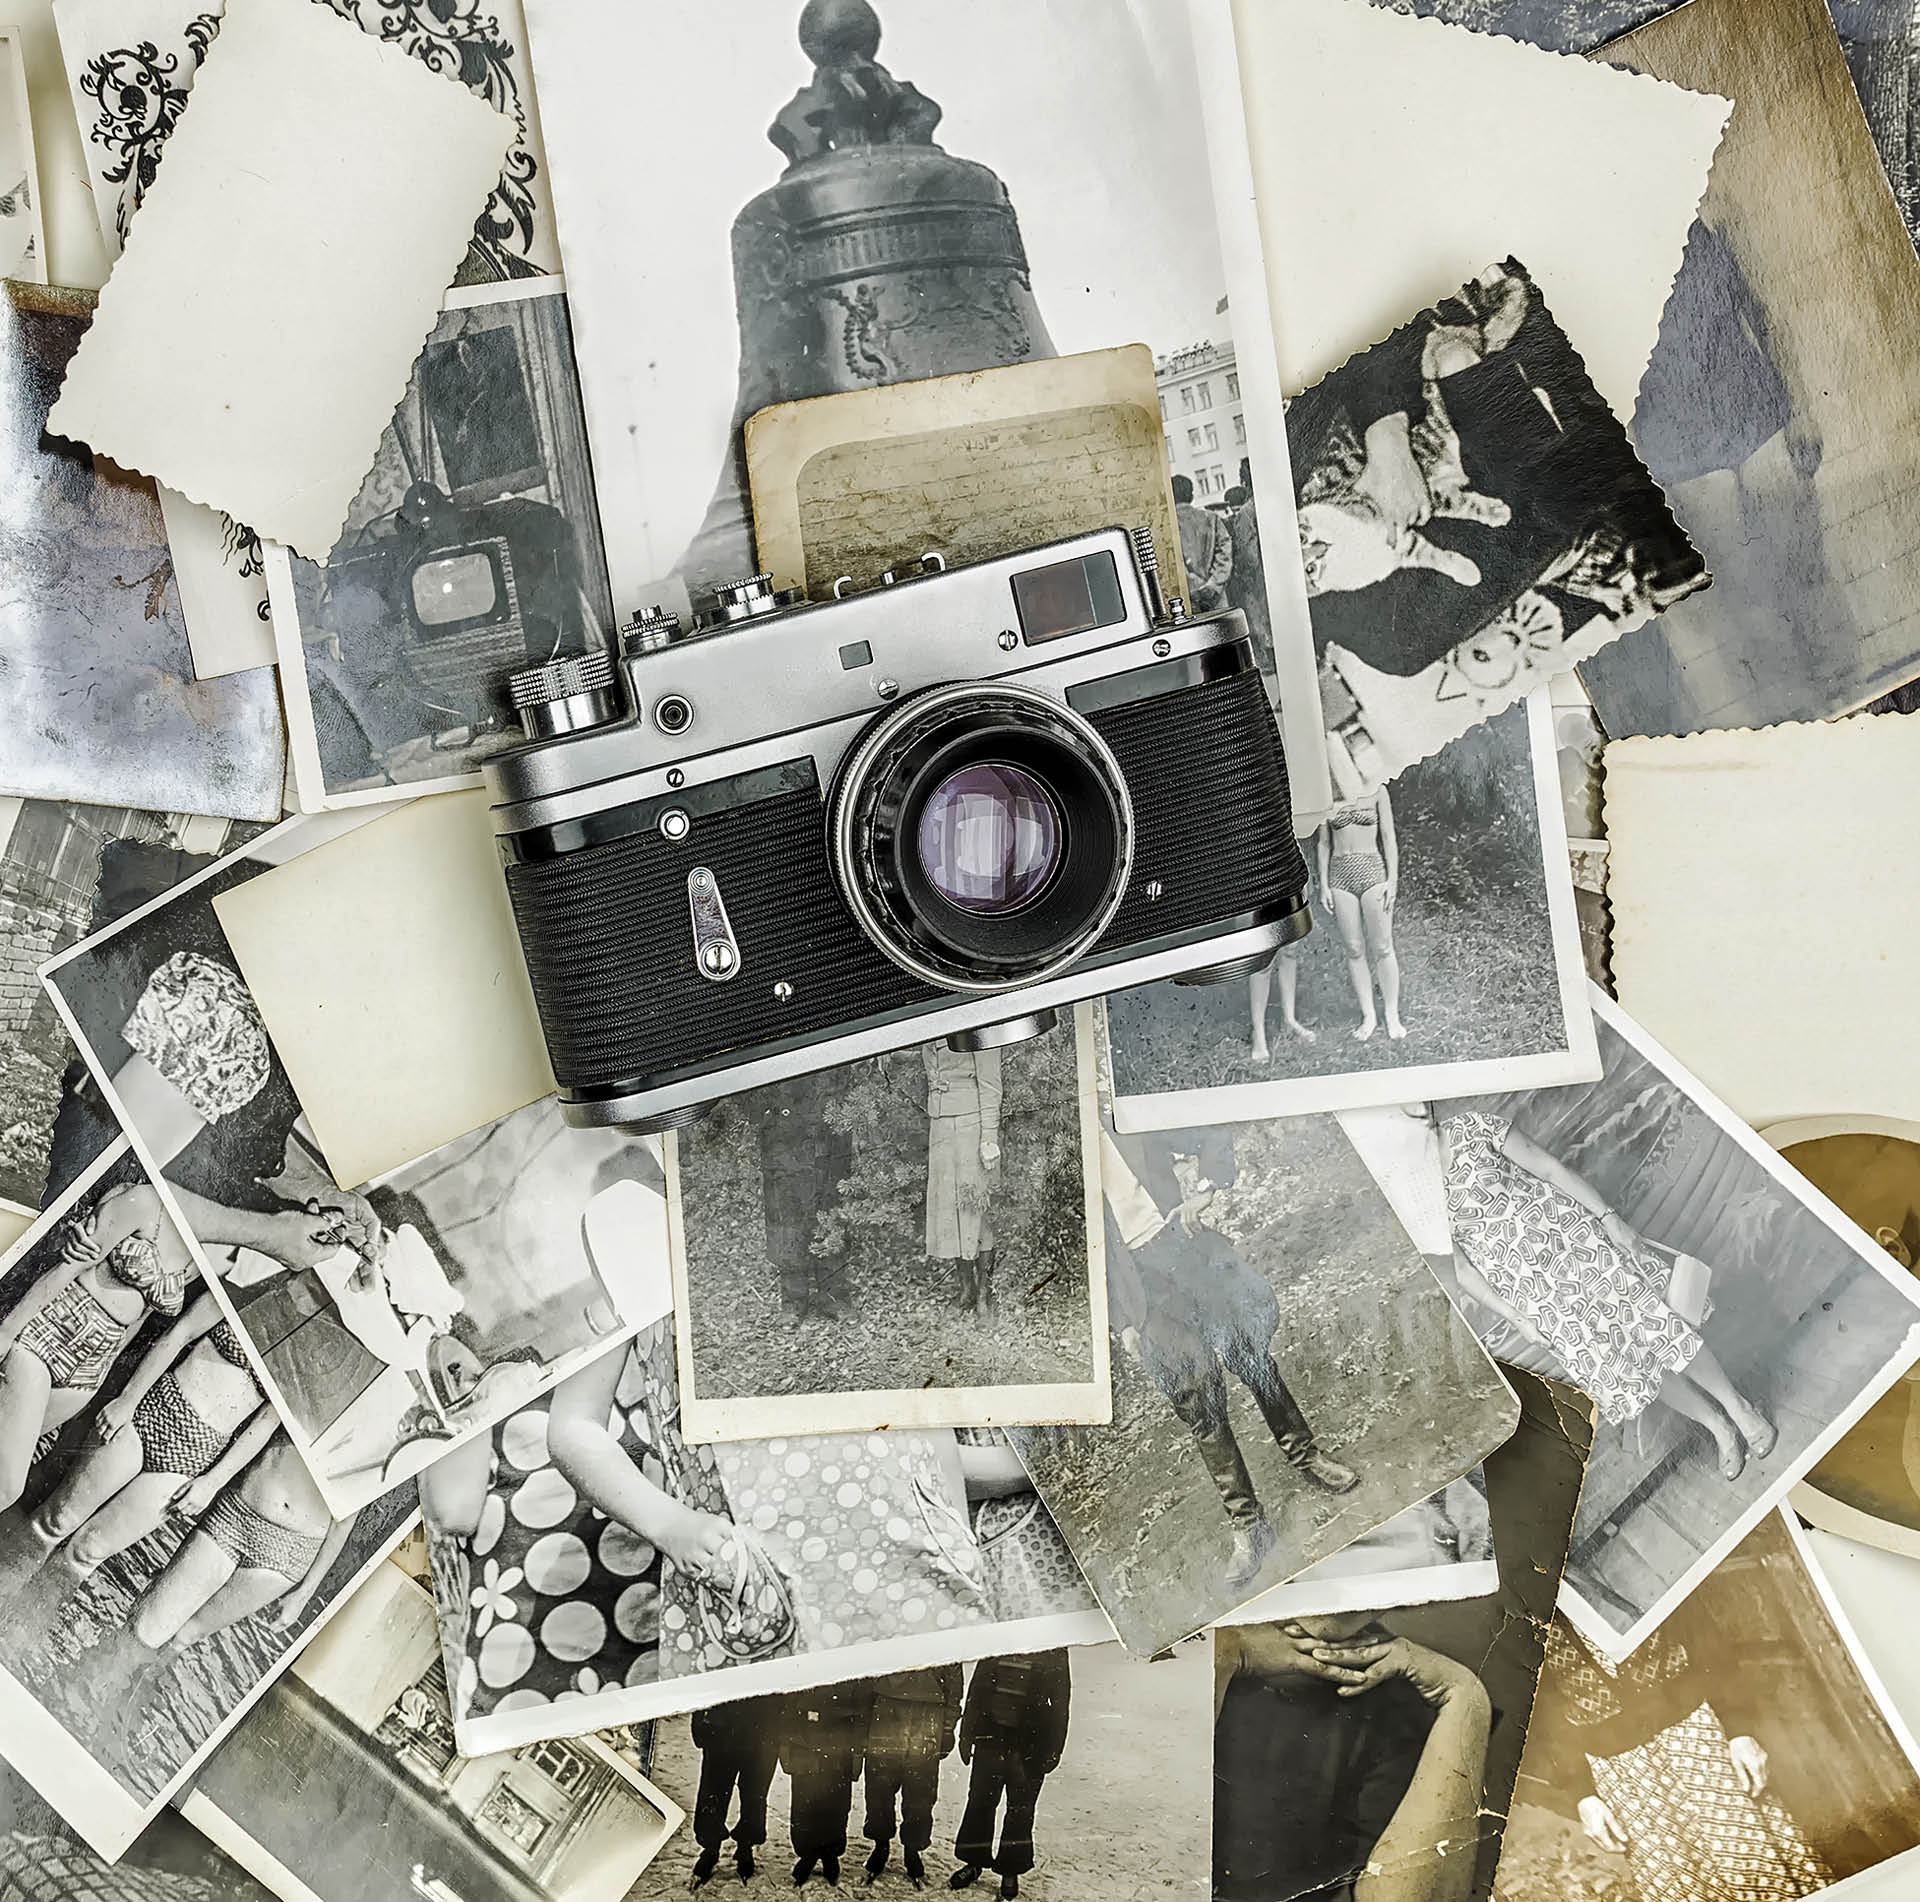 A camera with many pictures everywhere